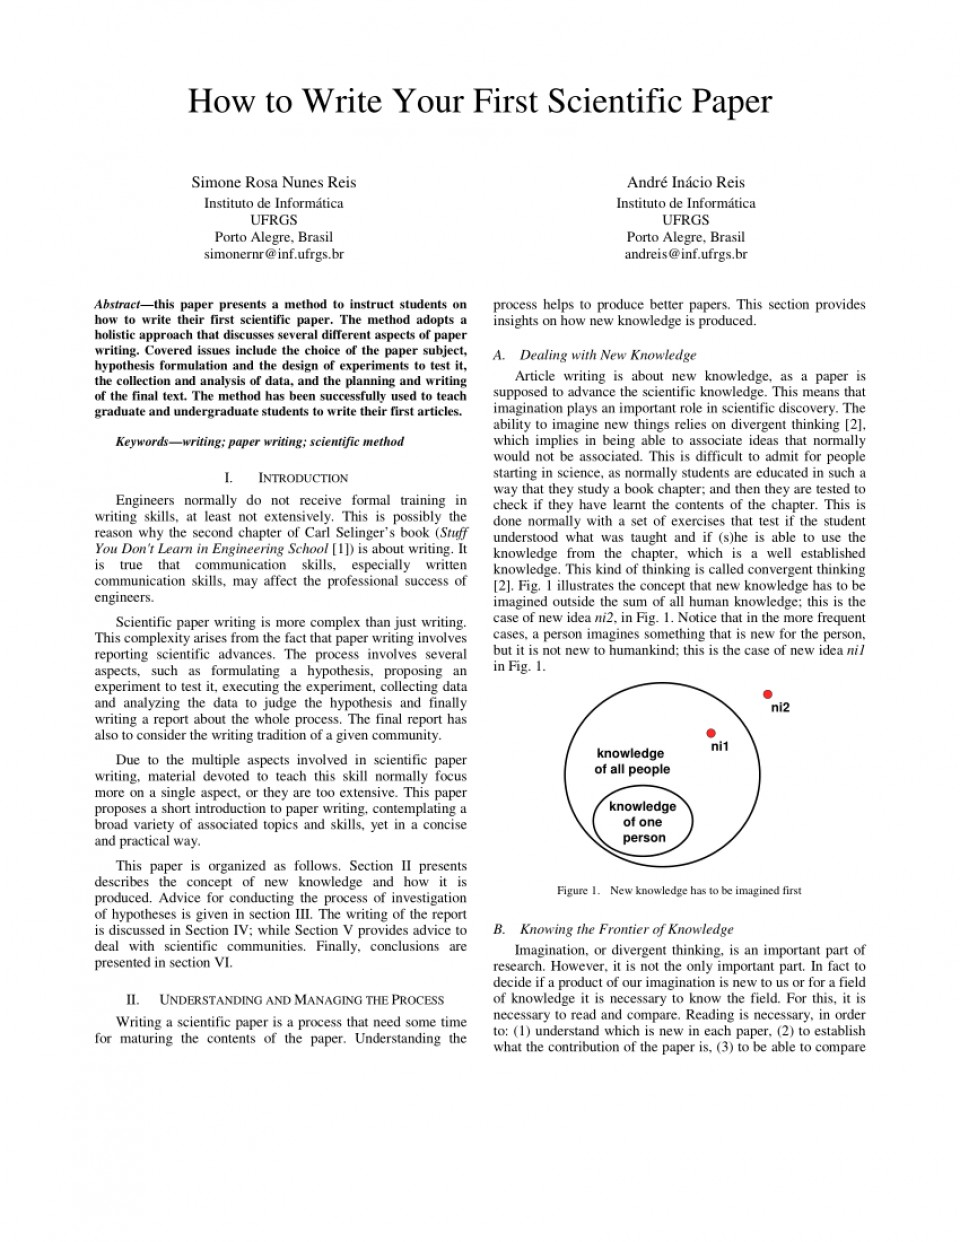 007 How To Write Scientific Paper And Publish Research Surprising A Pdf 960